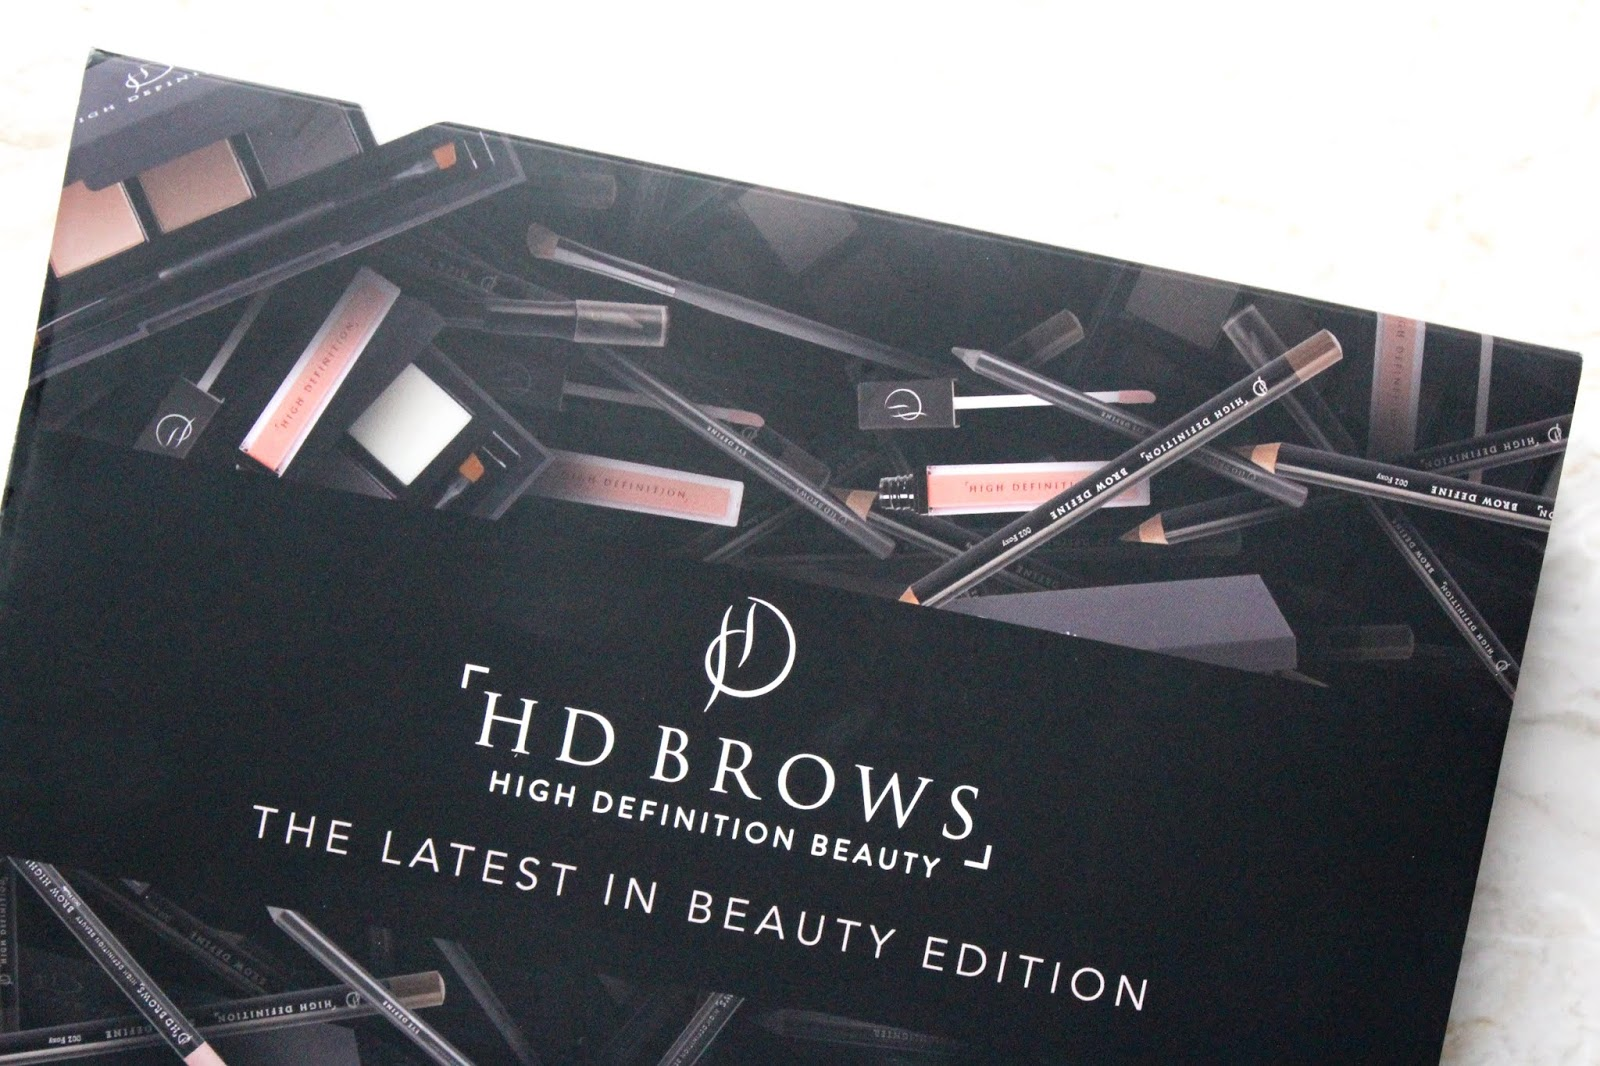 Latest in Beauty x HD Brows